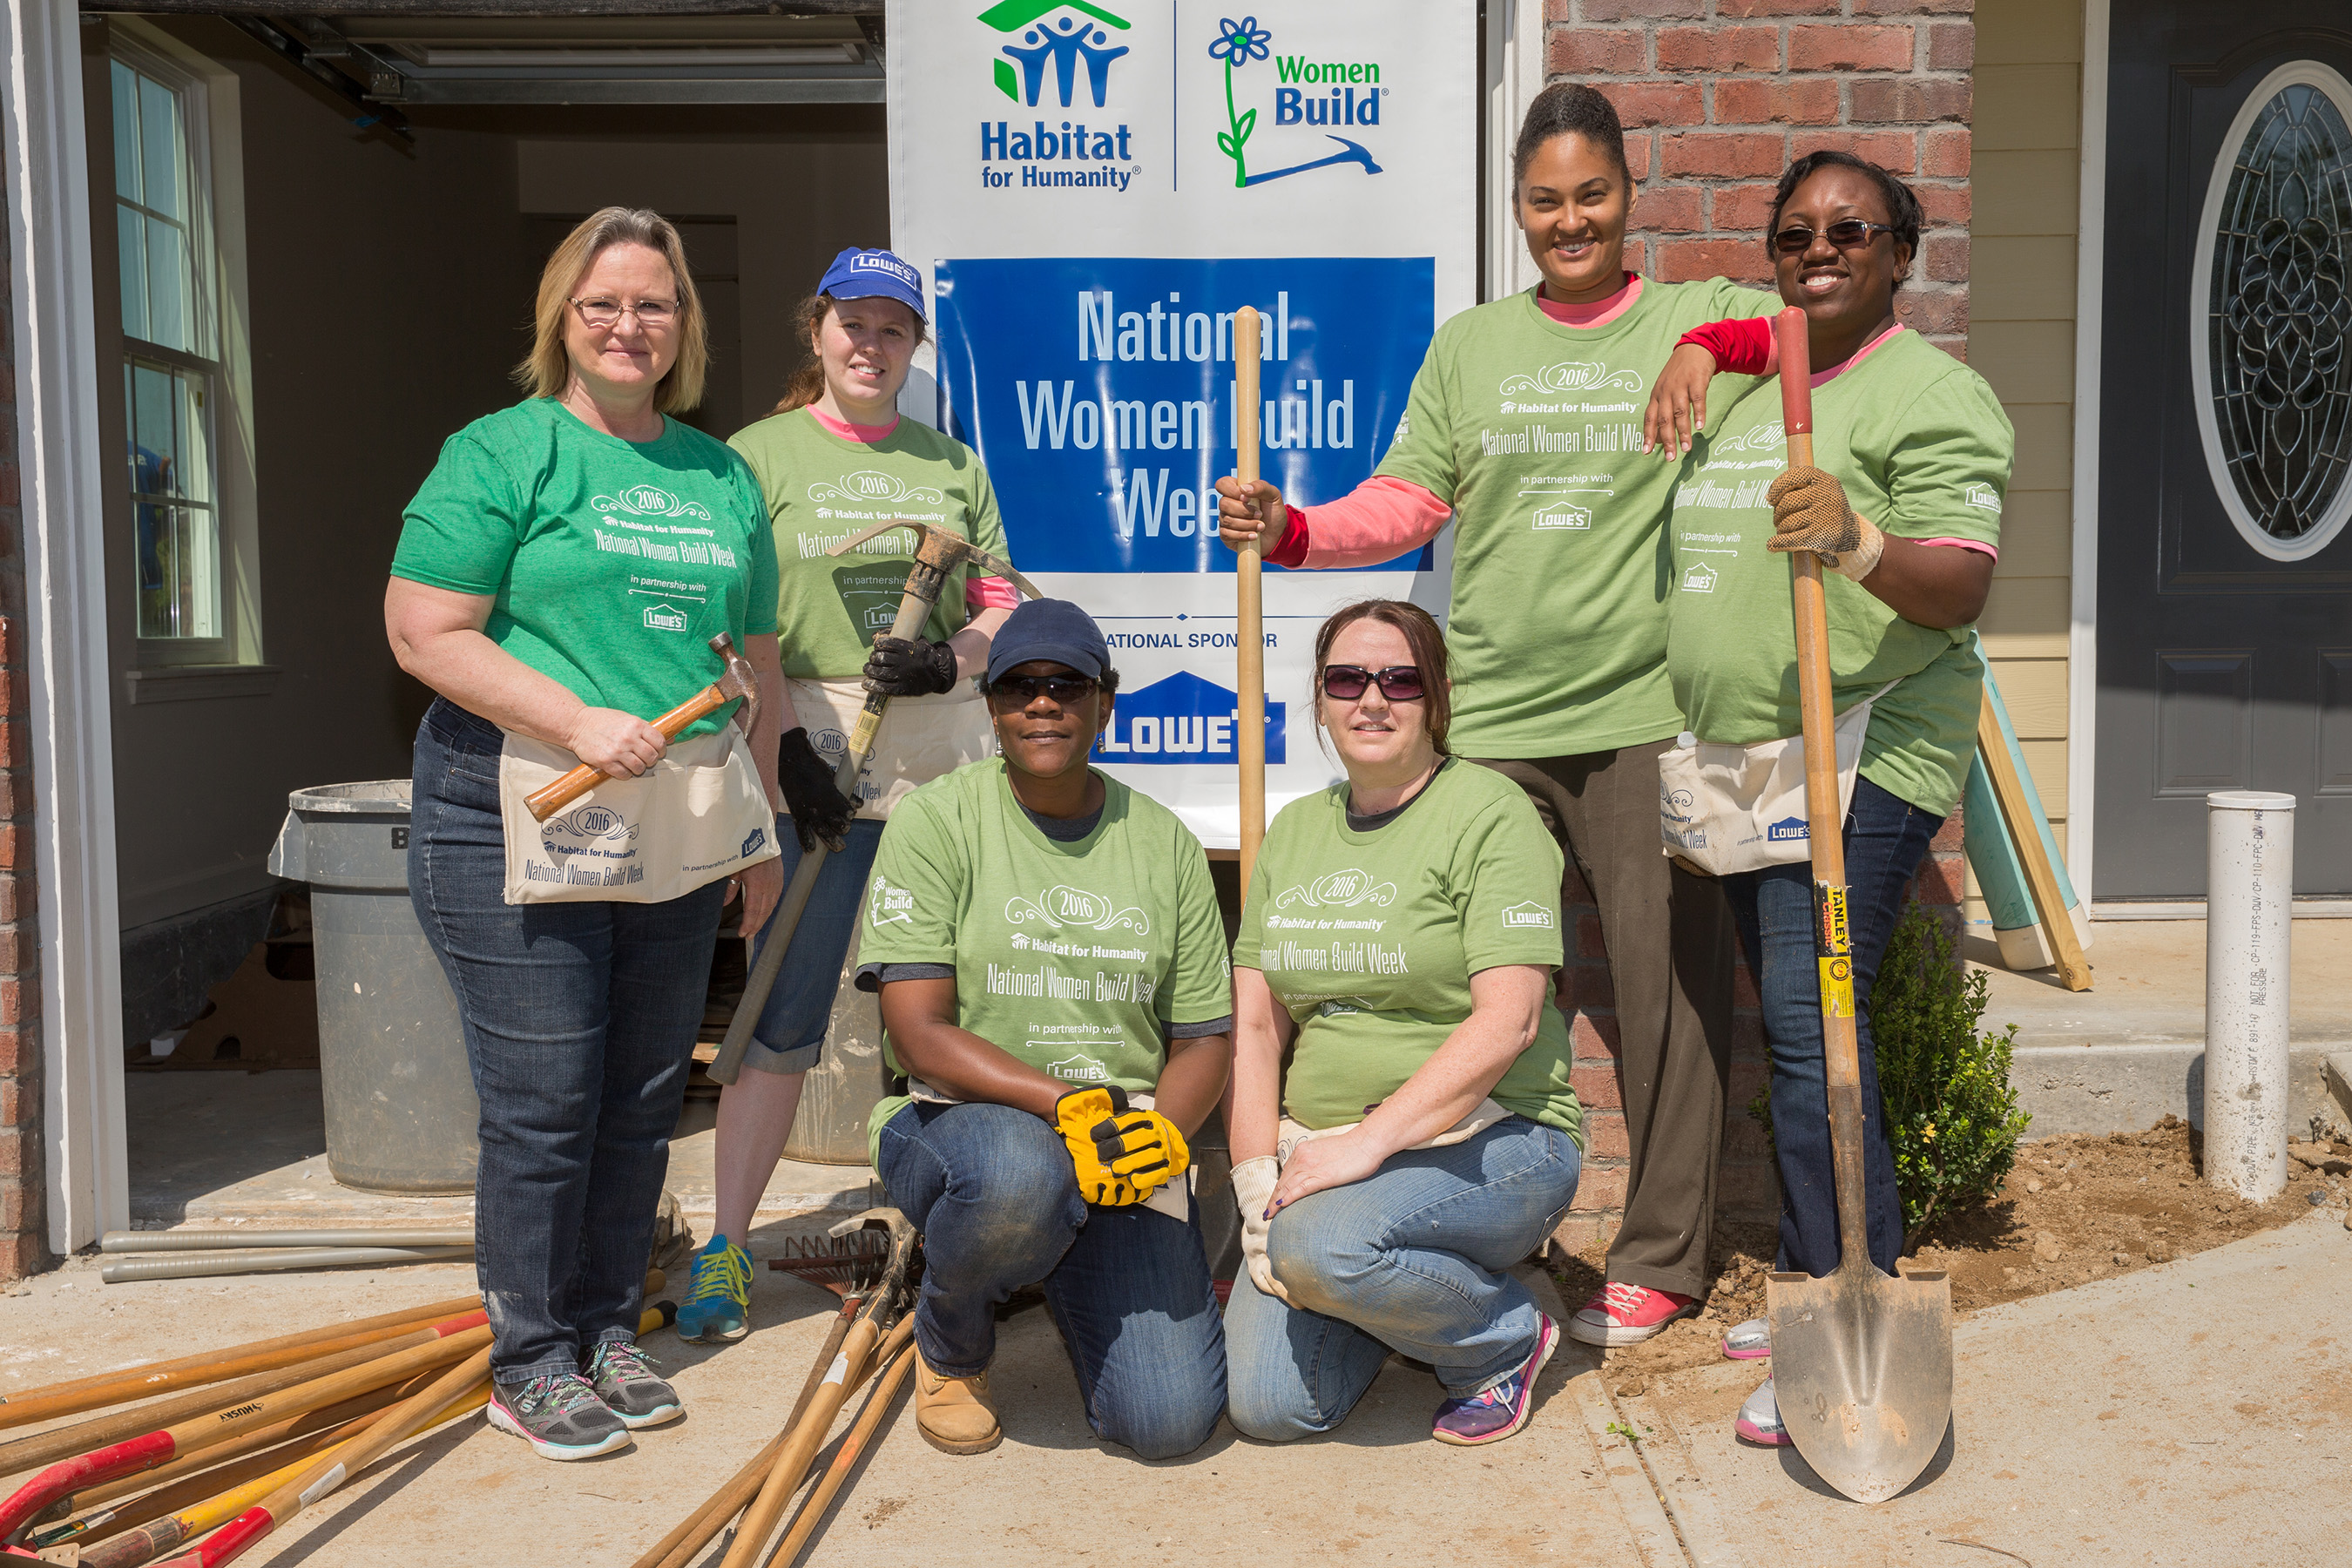 Every connection creates the opportunity to build a better life. National Women Build Week empowers women and gives them a platform to tackle affordable homeownership in their communities.